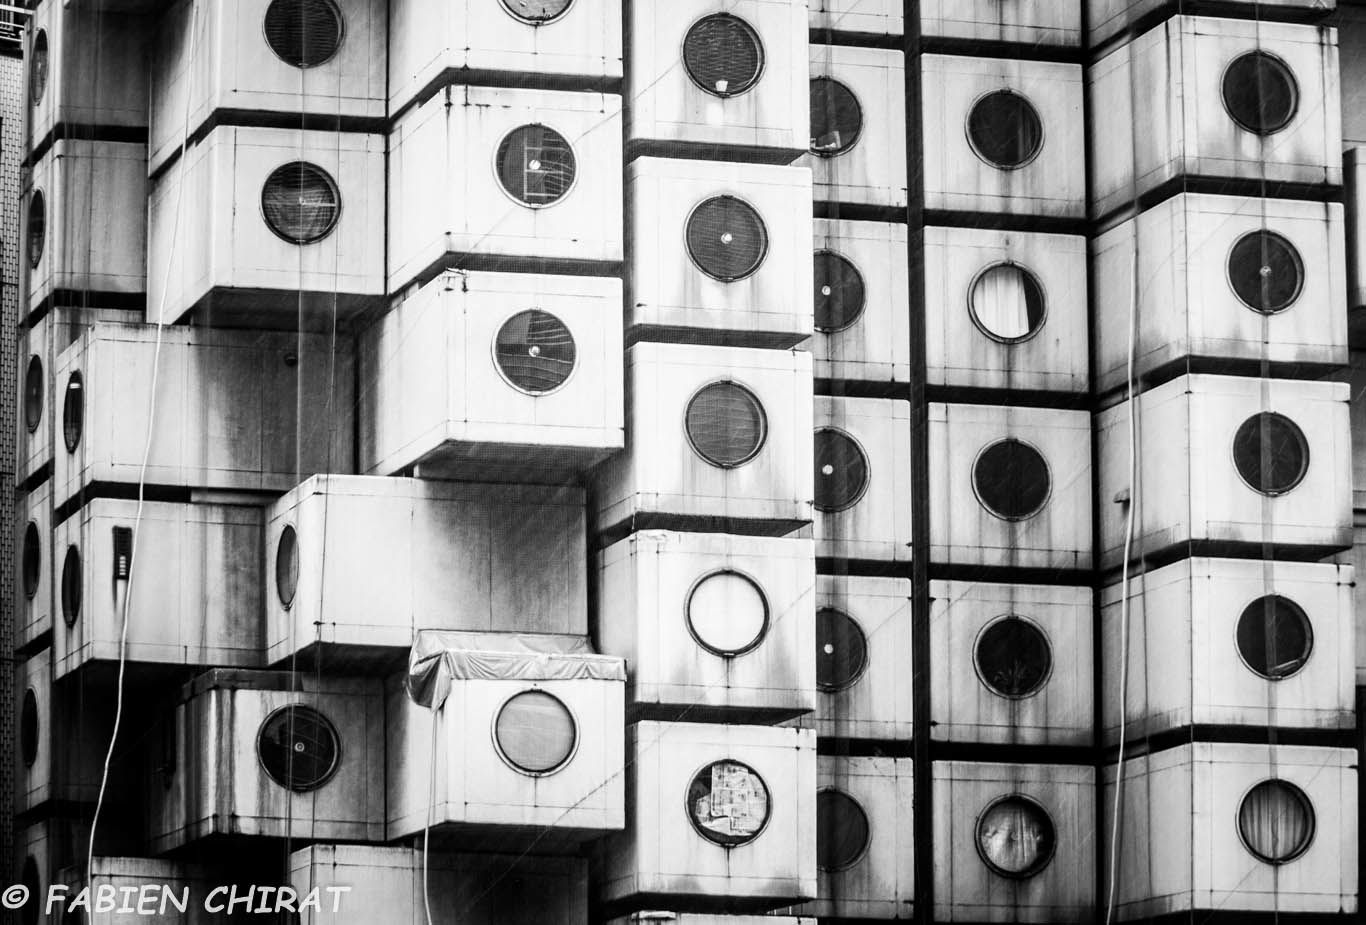 Nakagin capsule tower (quartier de Shimbashi)